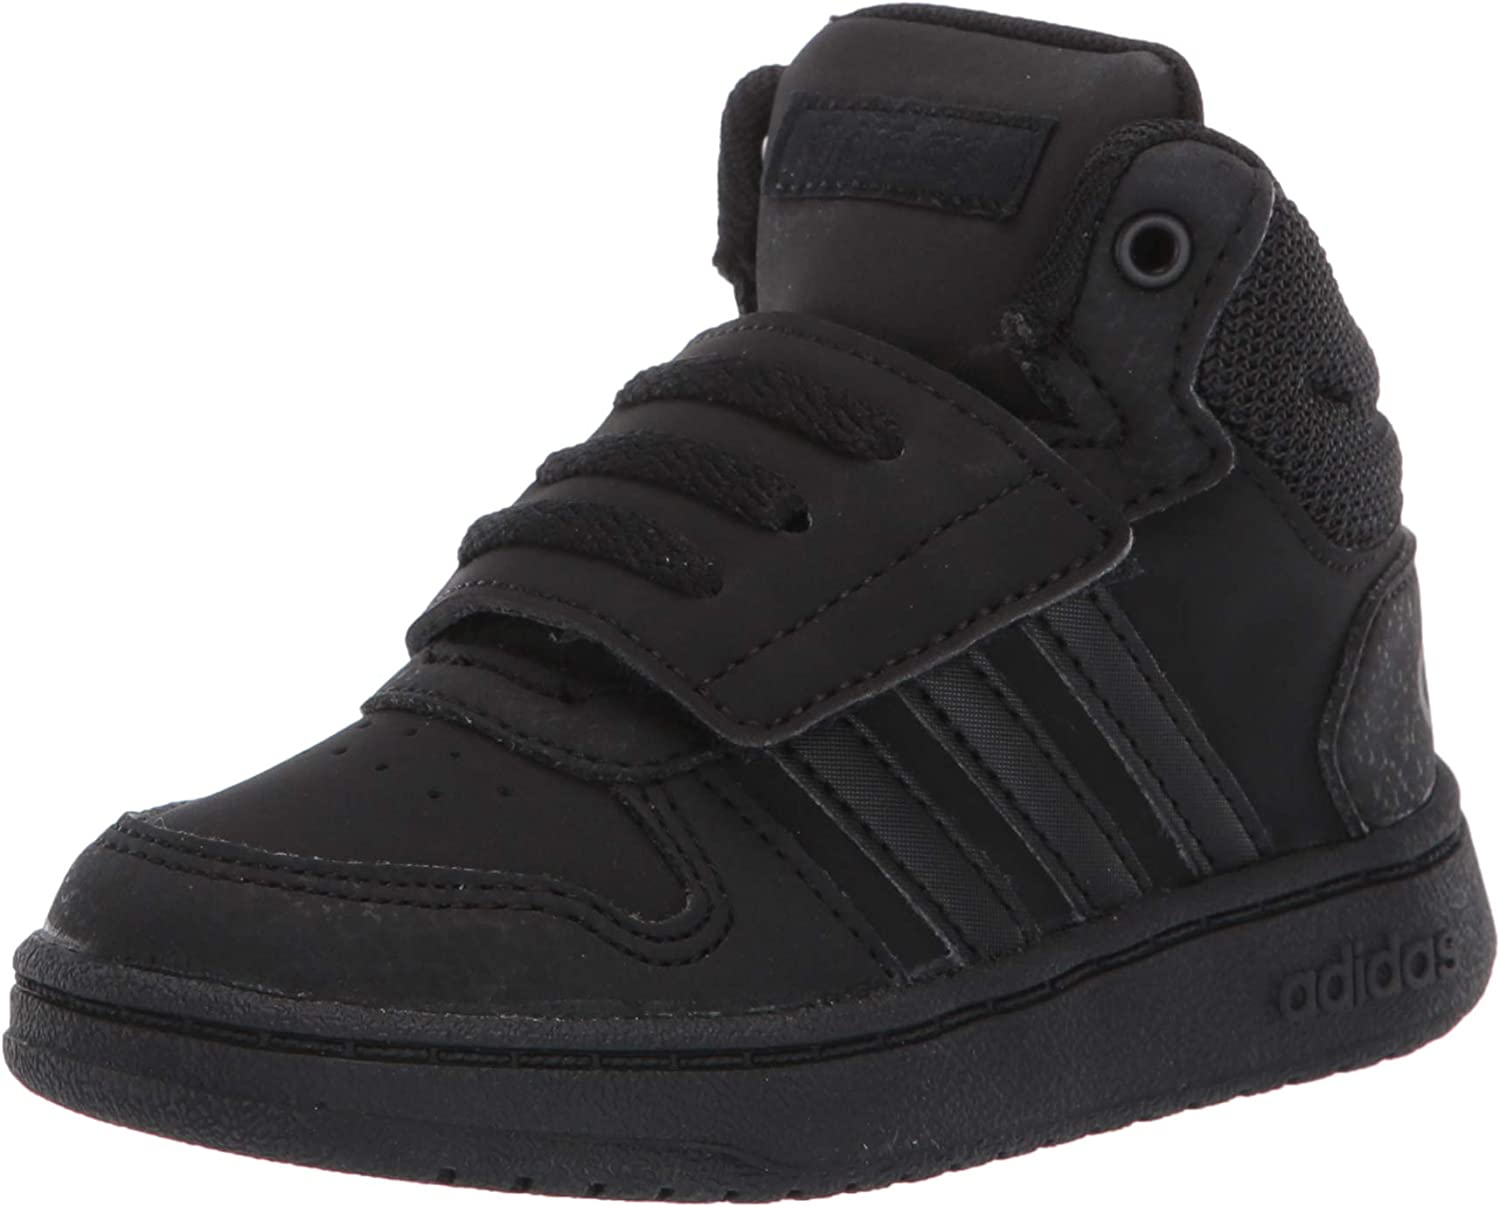 adidas Toddlers' Hoops 2.0 Mid Basketball Shoes ... - Amazon.com